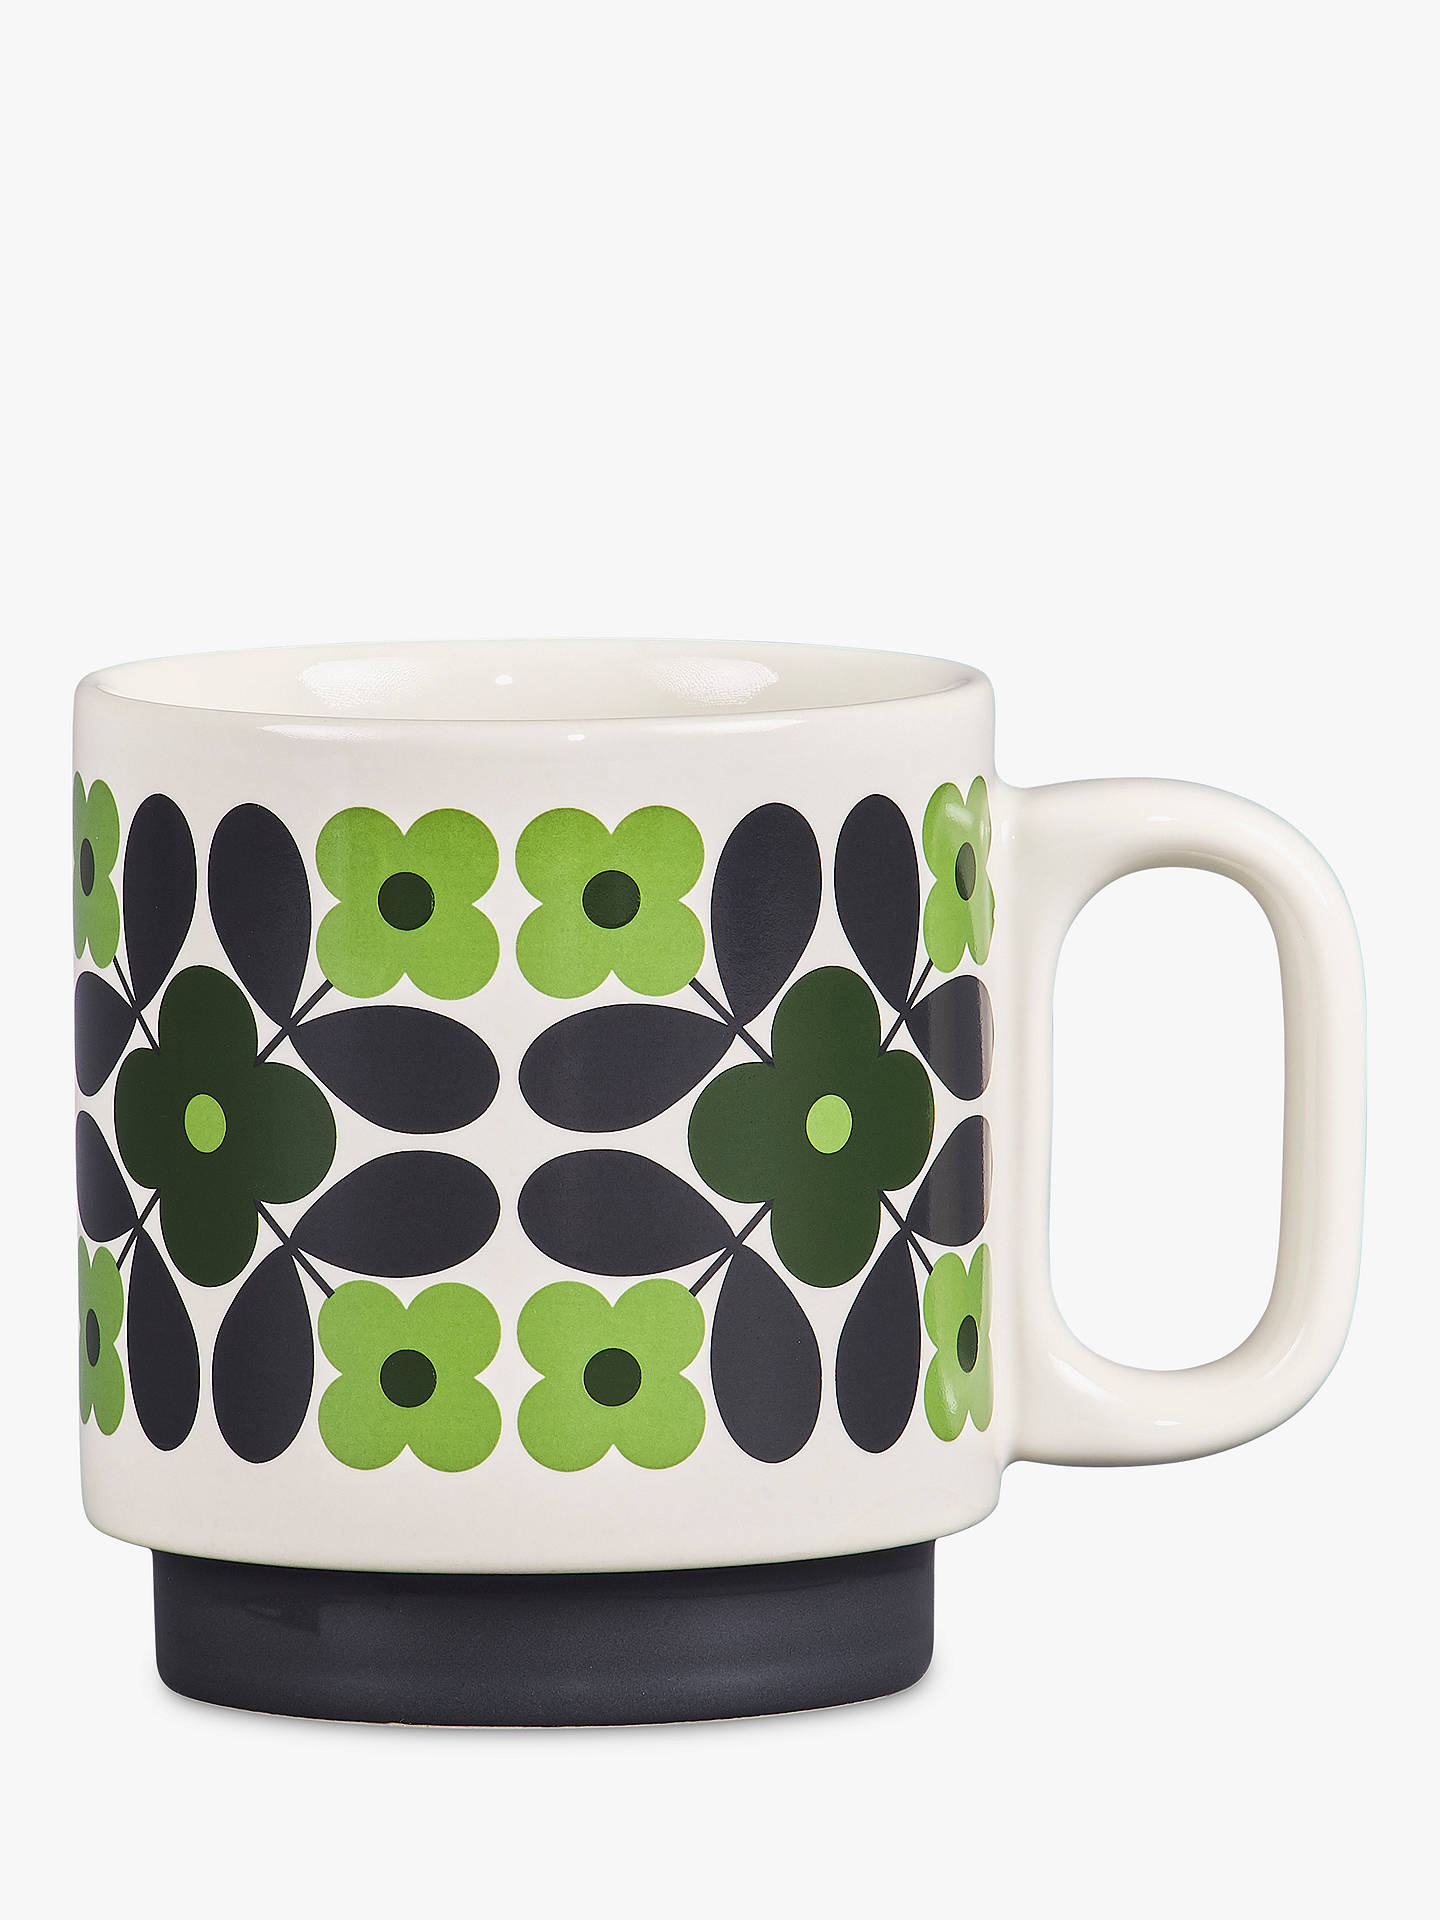 Buy Orla Kiely Flower Stackable Mug, 300ml, Green Online at johnlewis.com